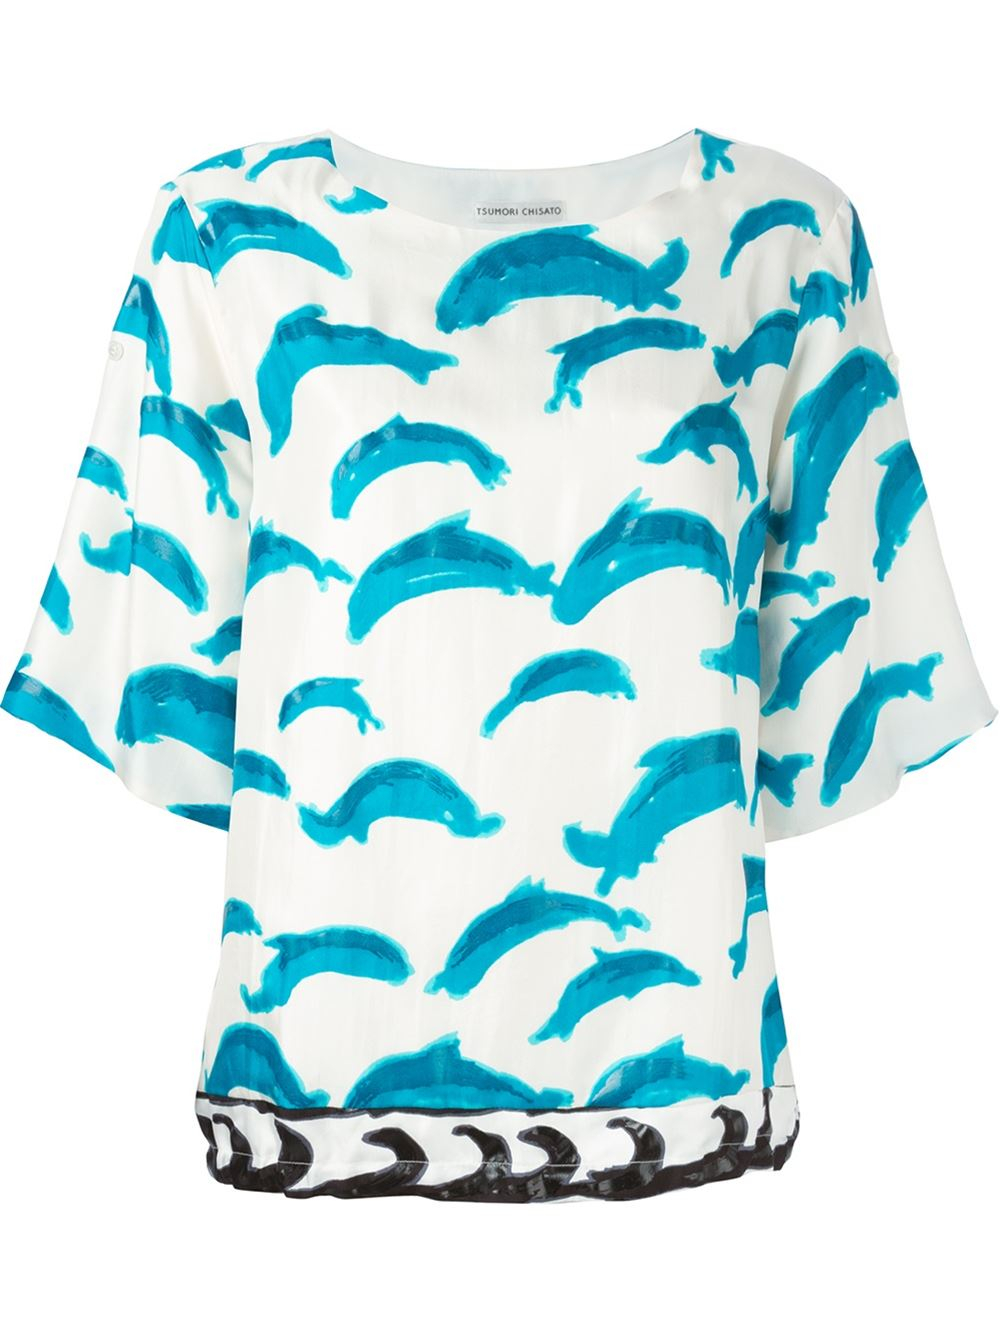 Outlet Cheapest Footlocker Pictures Cheap Price SHIRTS - Blouses Tsumori Chisato KpWejM